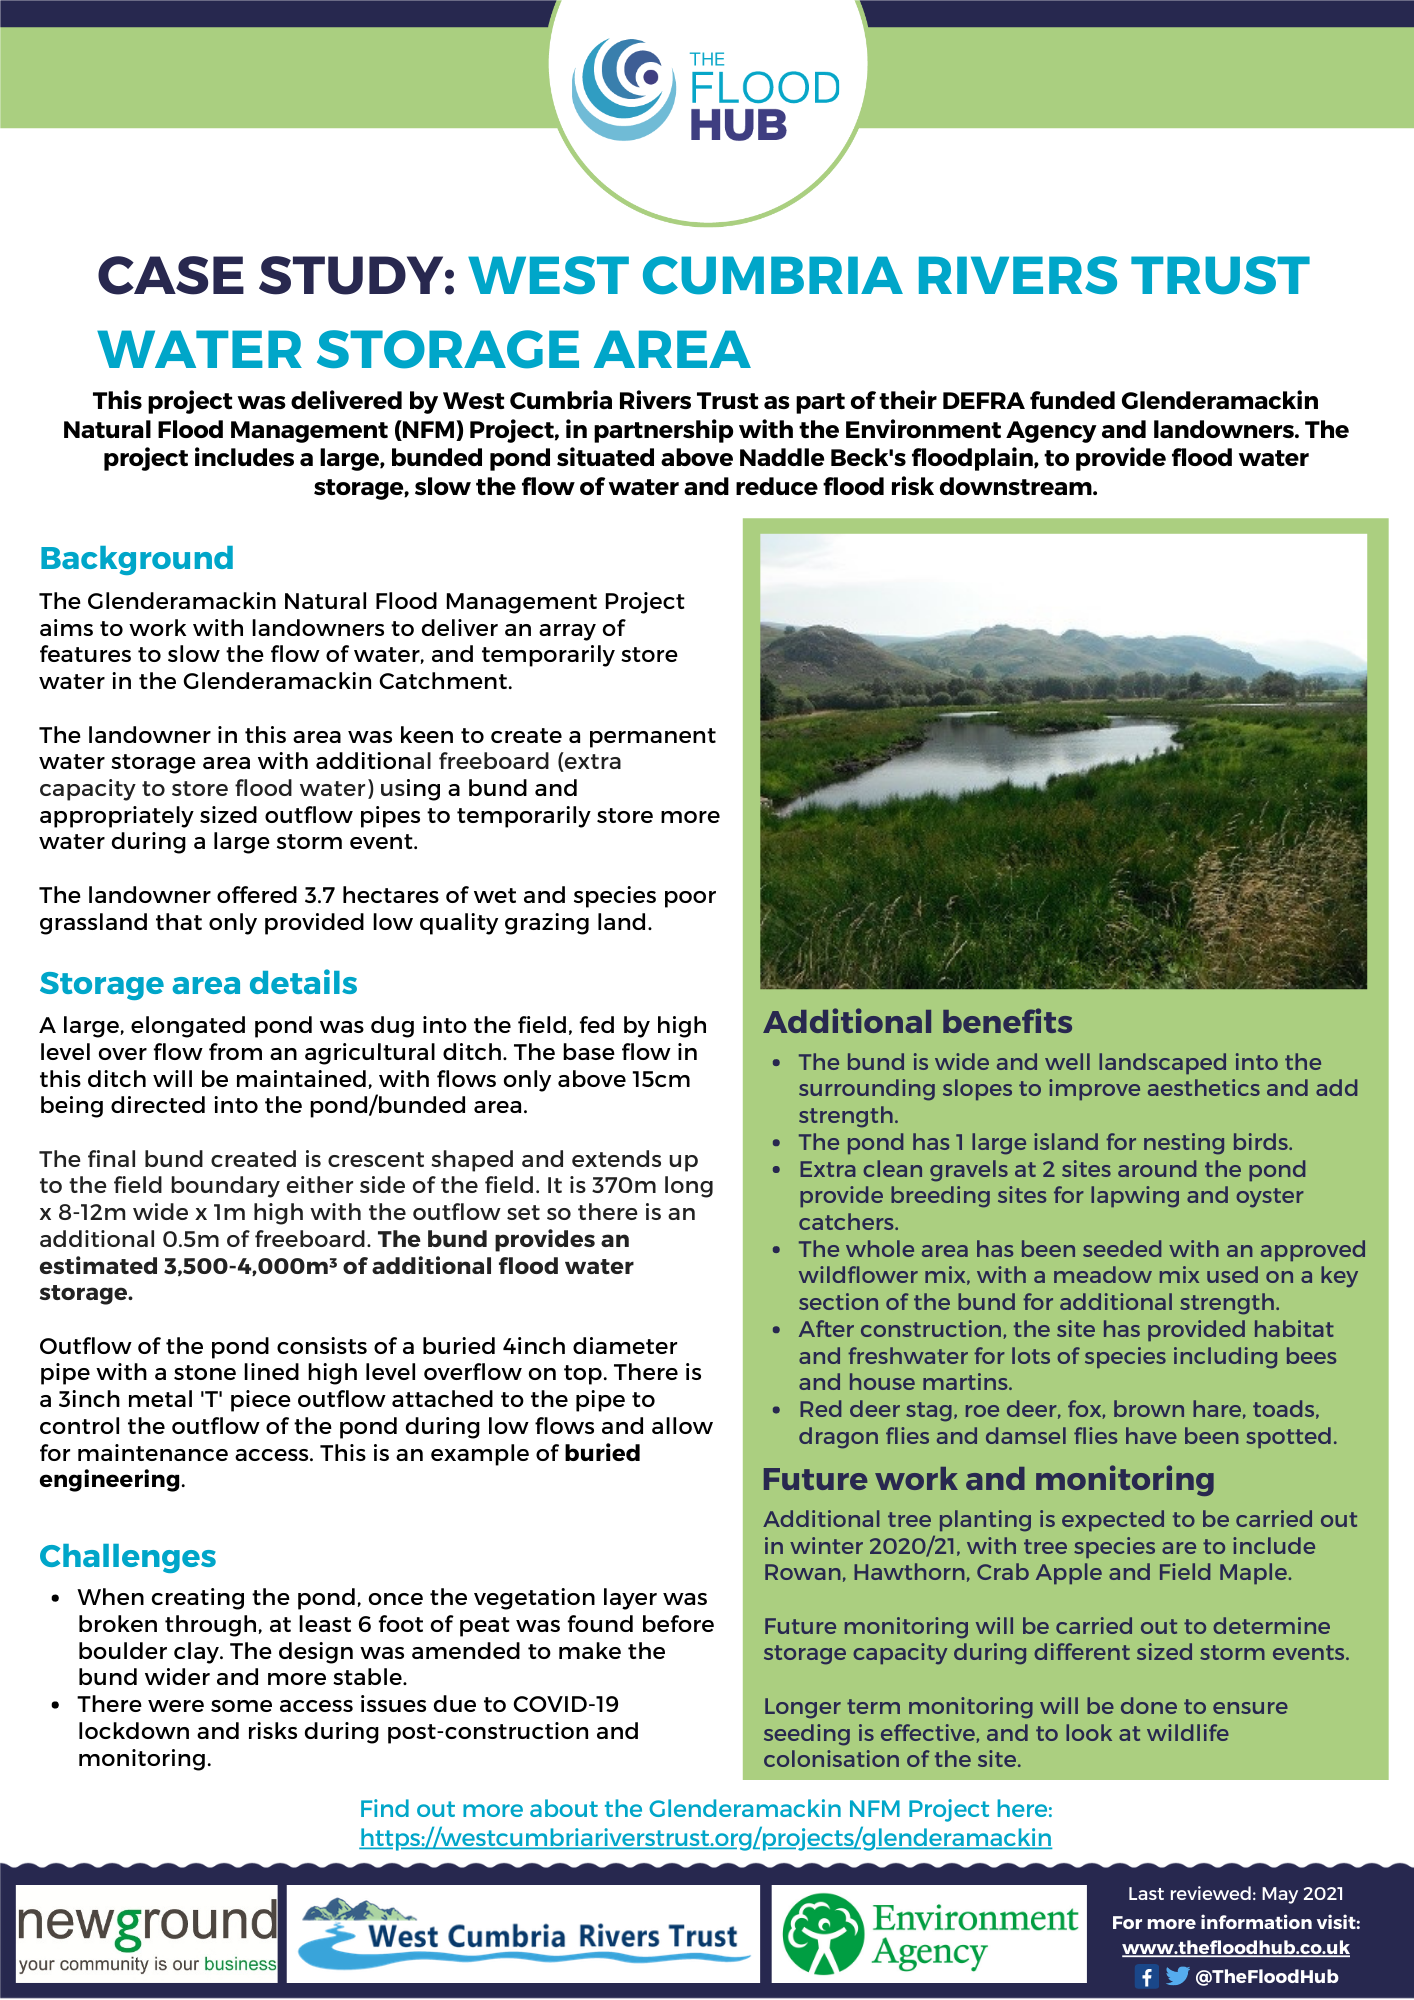 Natural Flood Management Case Study: West Cumbria Rivers Trust Water Storage Area